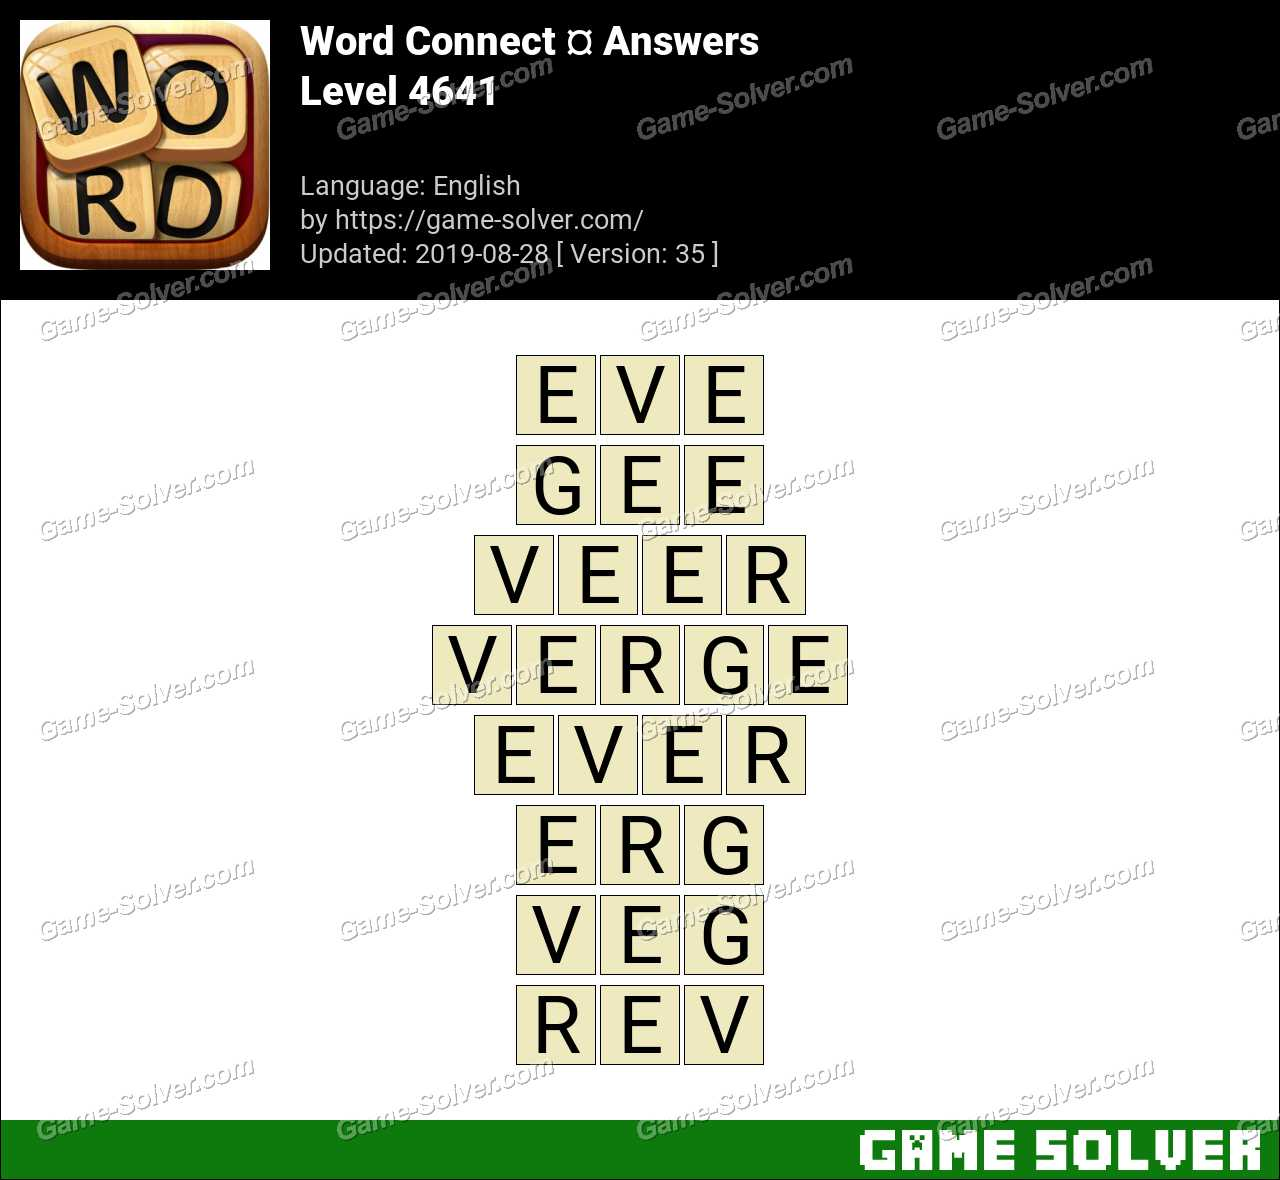 Word Connect Level 4641 Answers